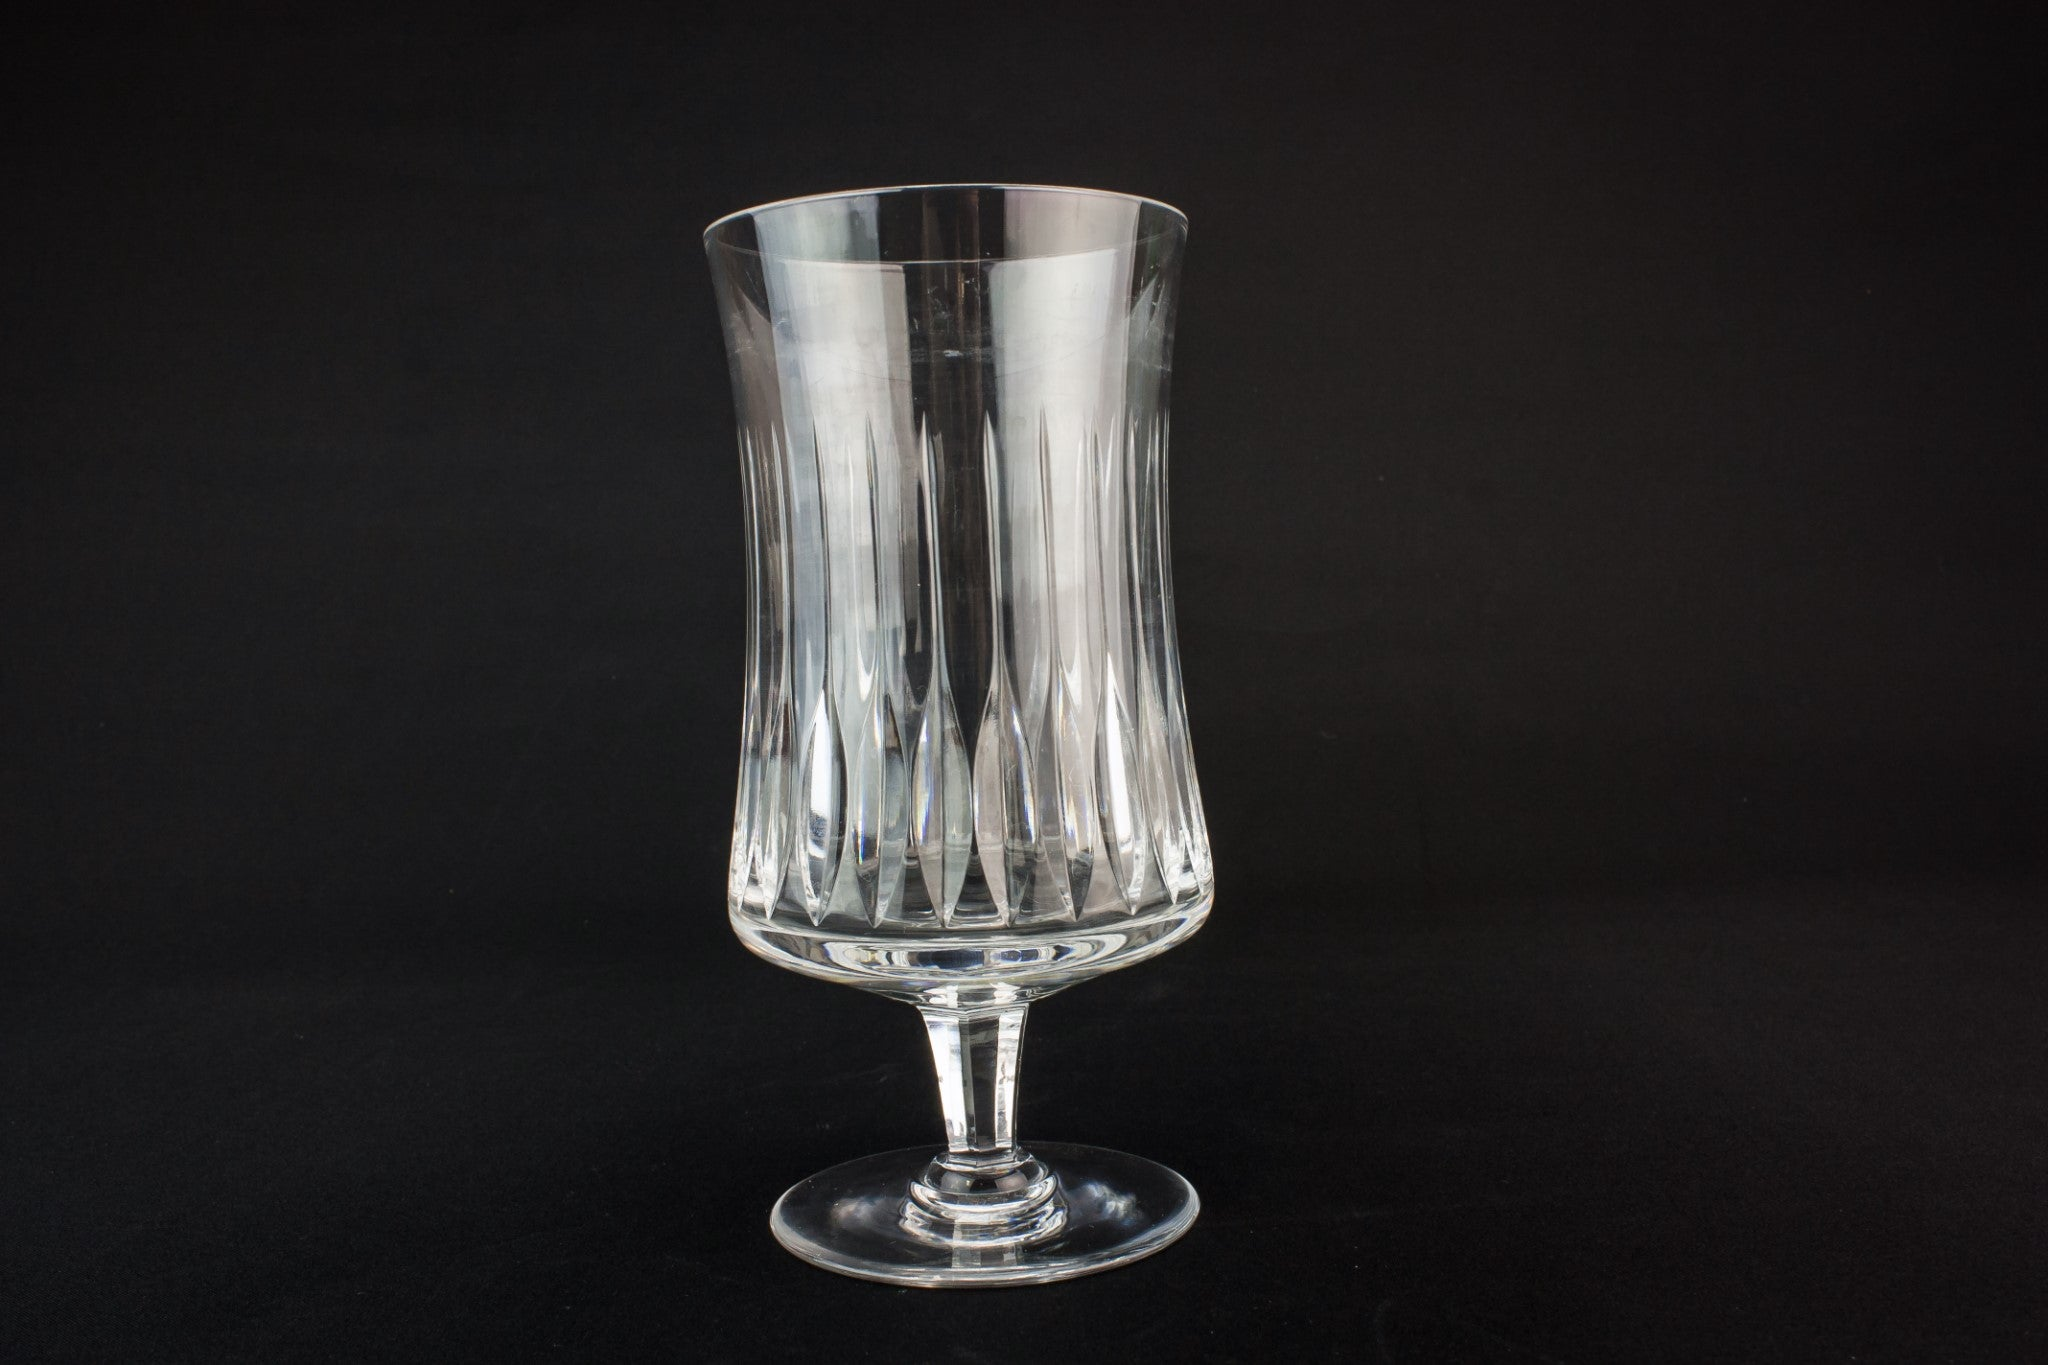 Goblet shaped glass vase